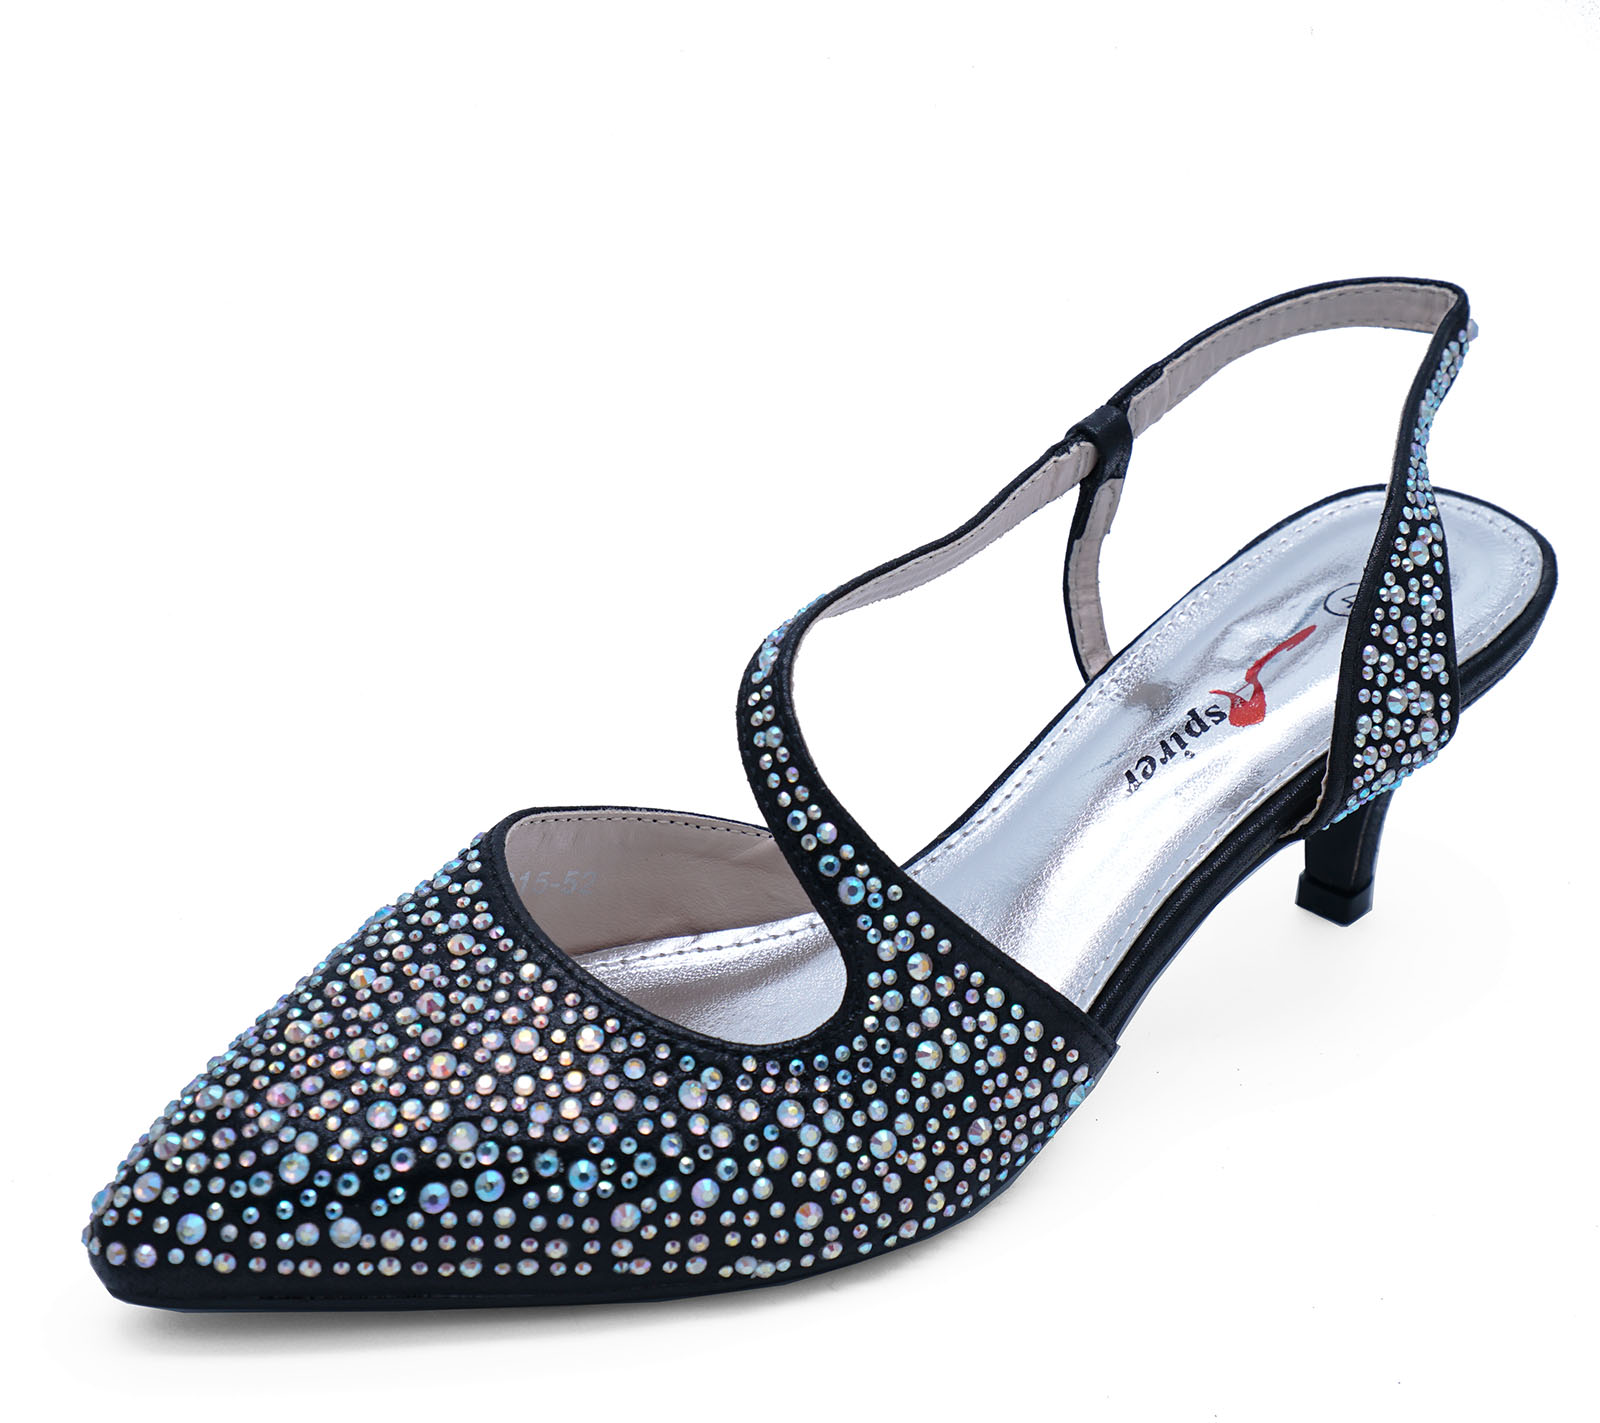 c15ad36742cd Sentinel WOMENS BLACK LOW-HEEL SLINGBACK DIAMANTE ELEGANT PARTY EVENING  SHOES SIZES 3-8